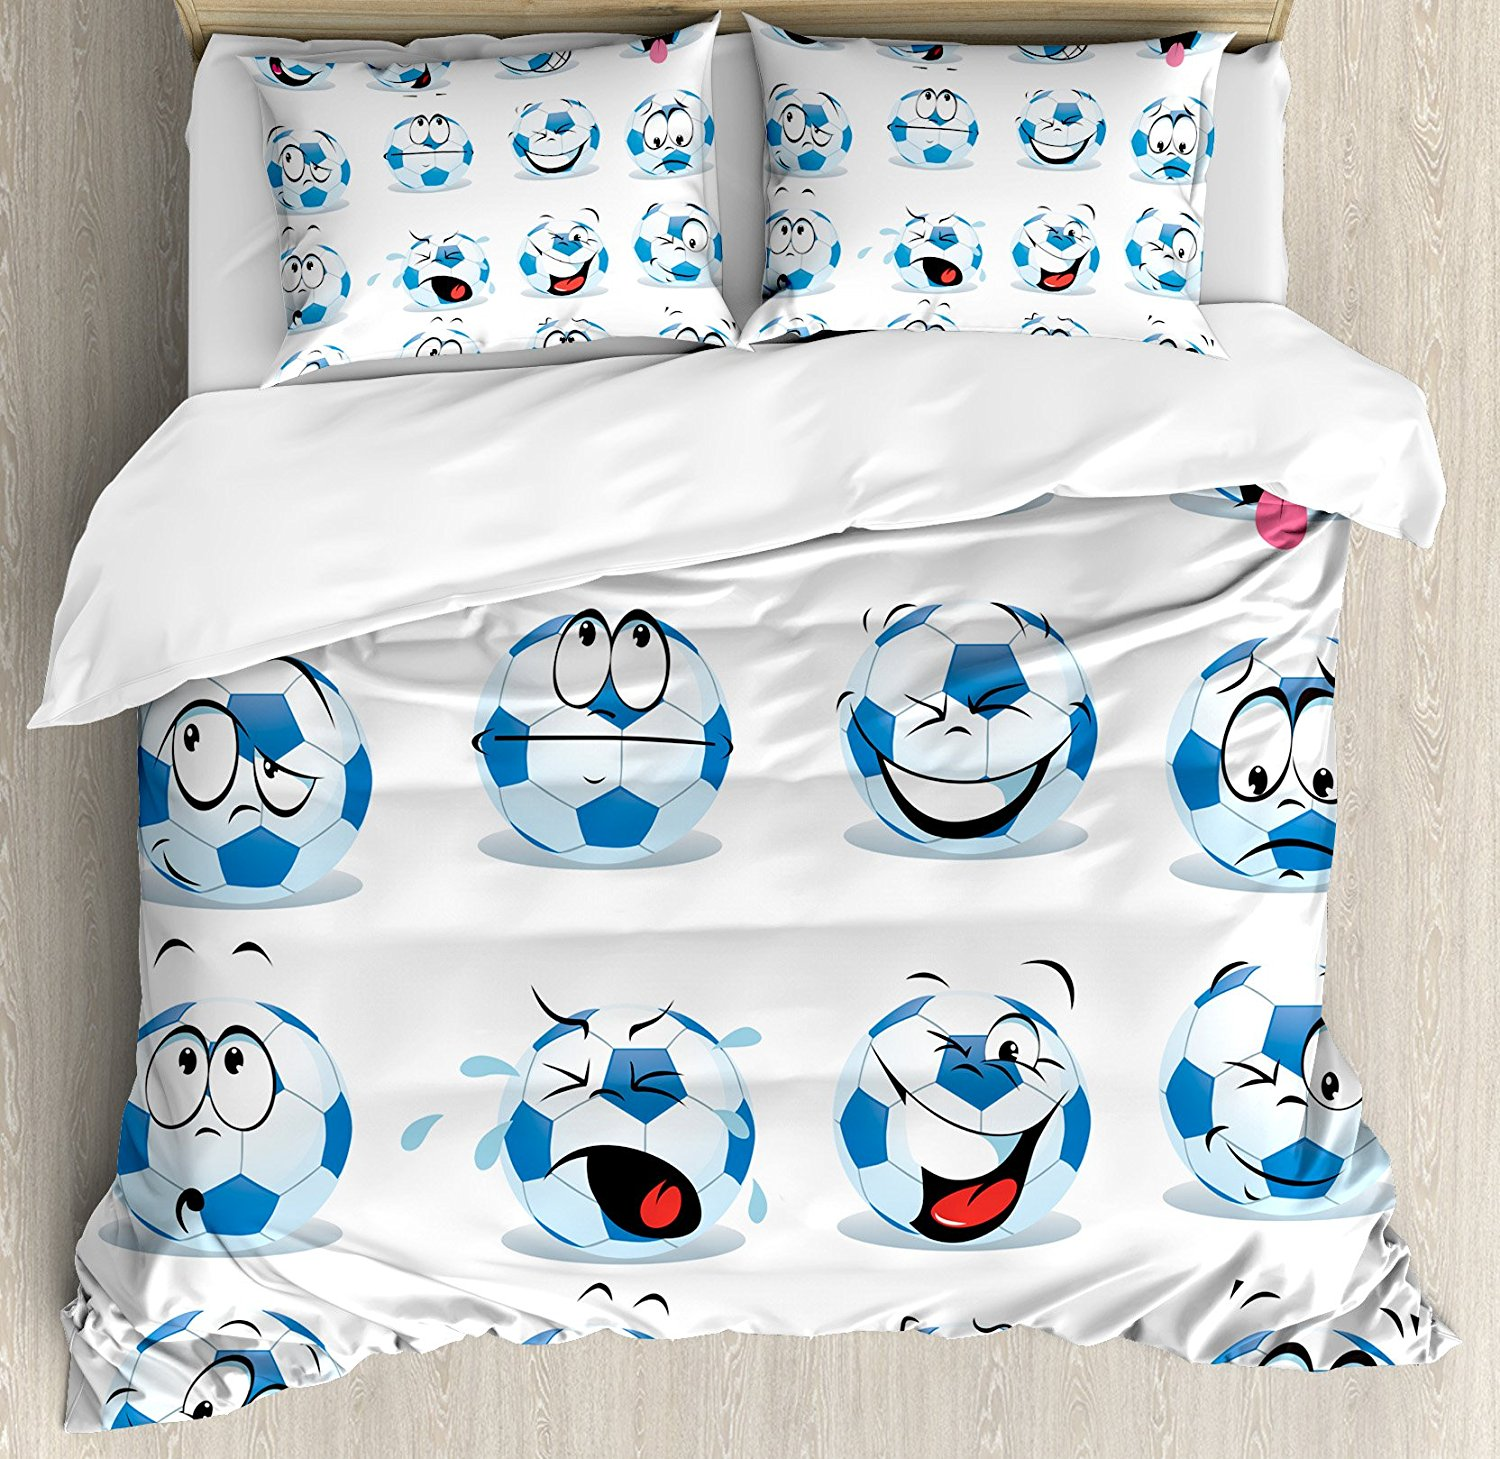 Sports Decor Duvet Cover Set Cartoon Soccer Ball with Many Expressions Bored Laughing Happy Smiley 4 Piece Bedding Set